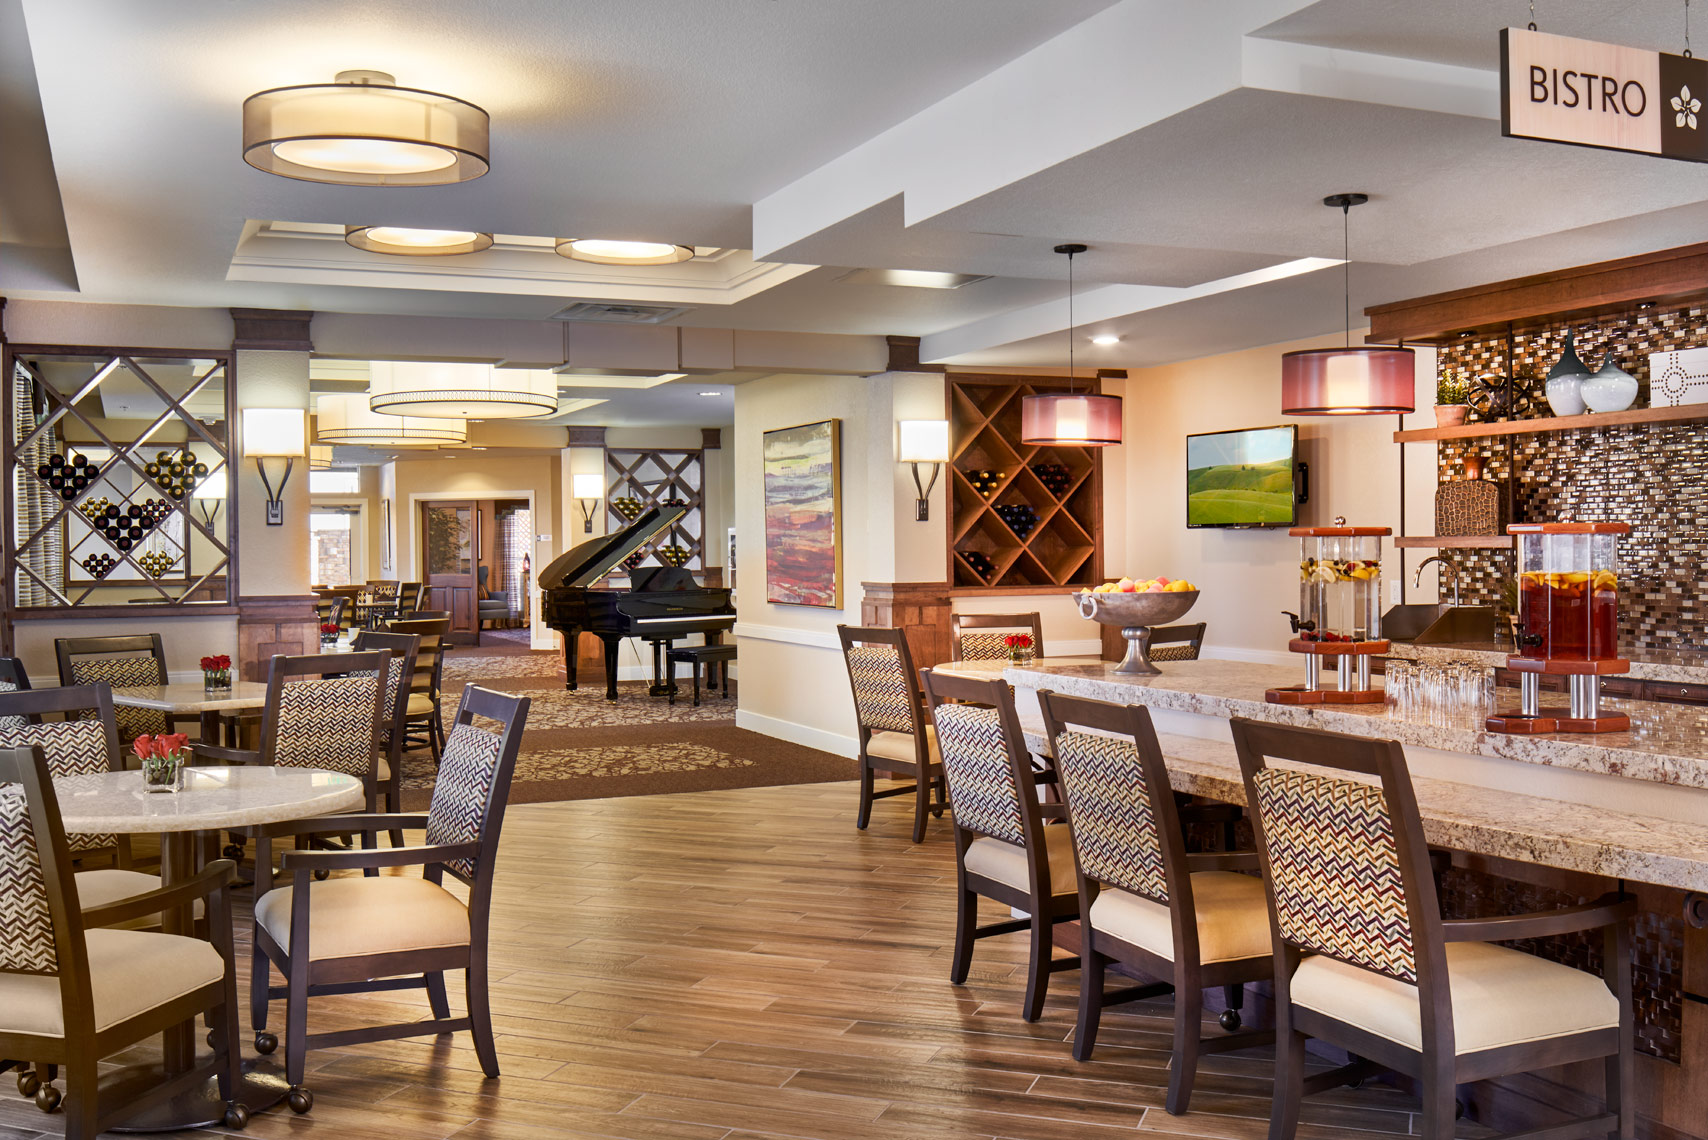 Morningstar-Wheatridge-Interior-3-15-16-Dining-Bistro-Web